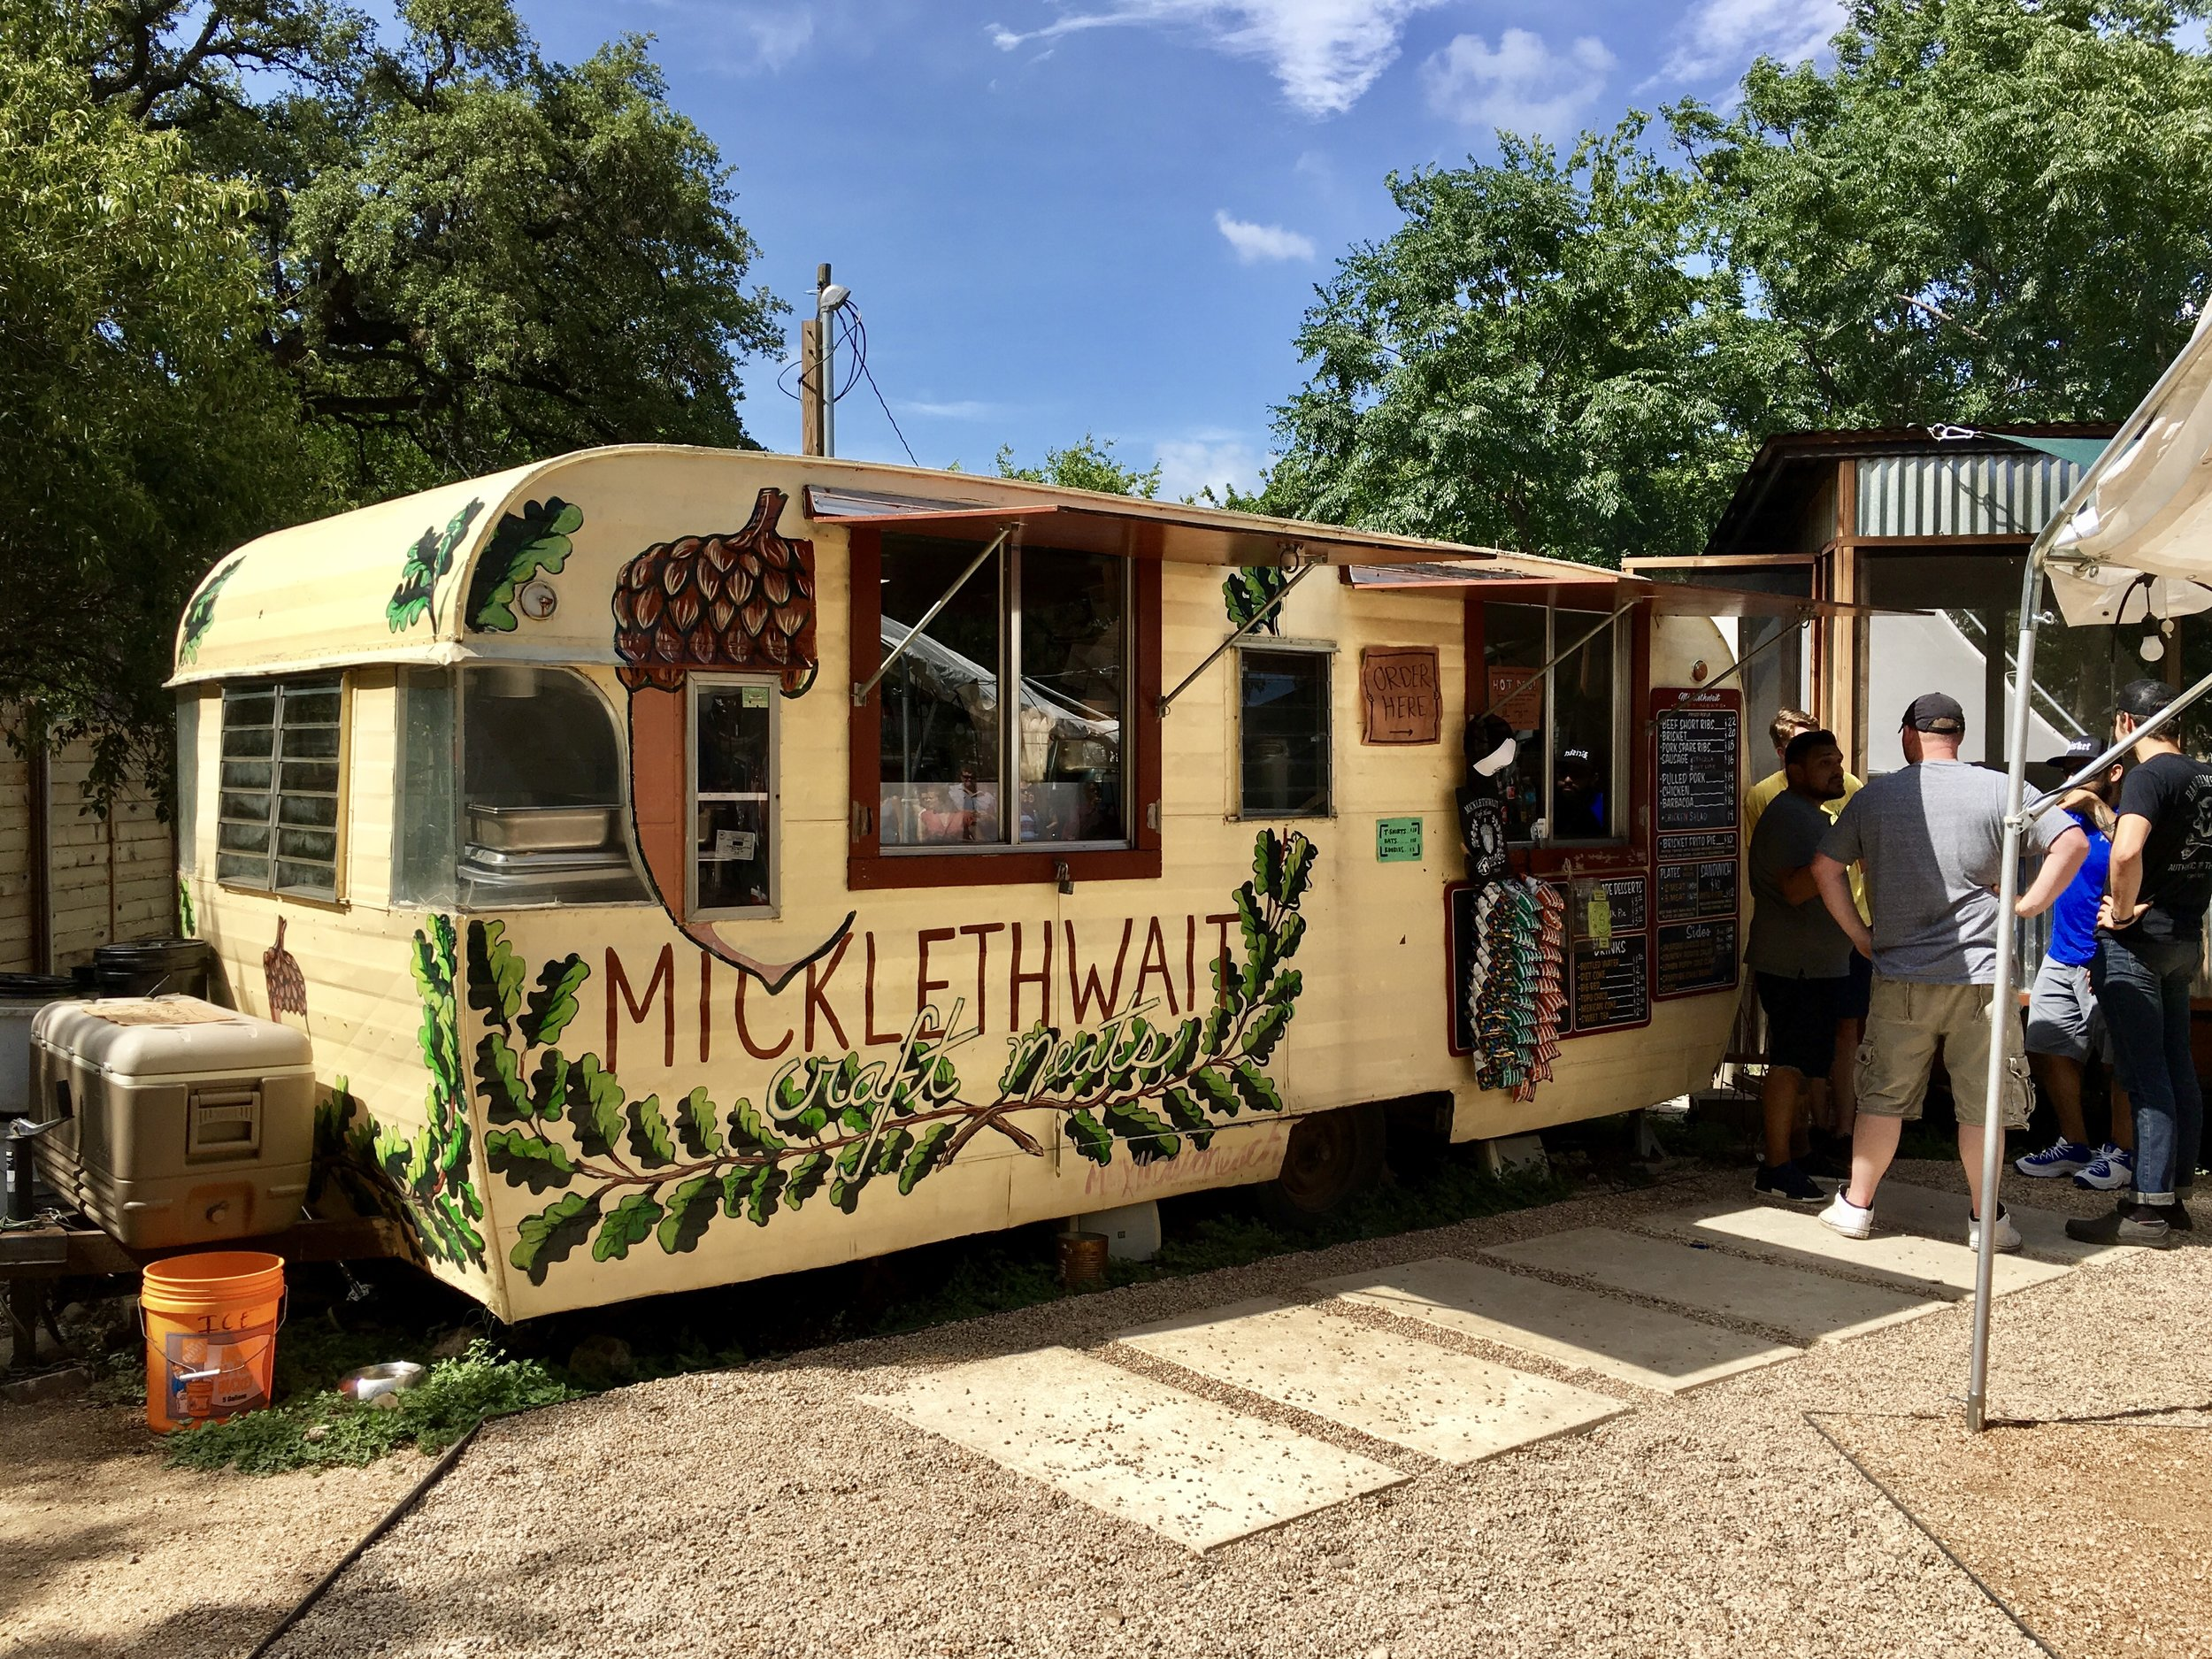 Micklethwait Craft Meats - 1309 Rosewood AveAustin, Texas #13 on the TX BBQ PassportSixth stop